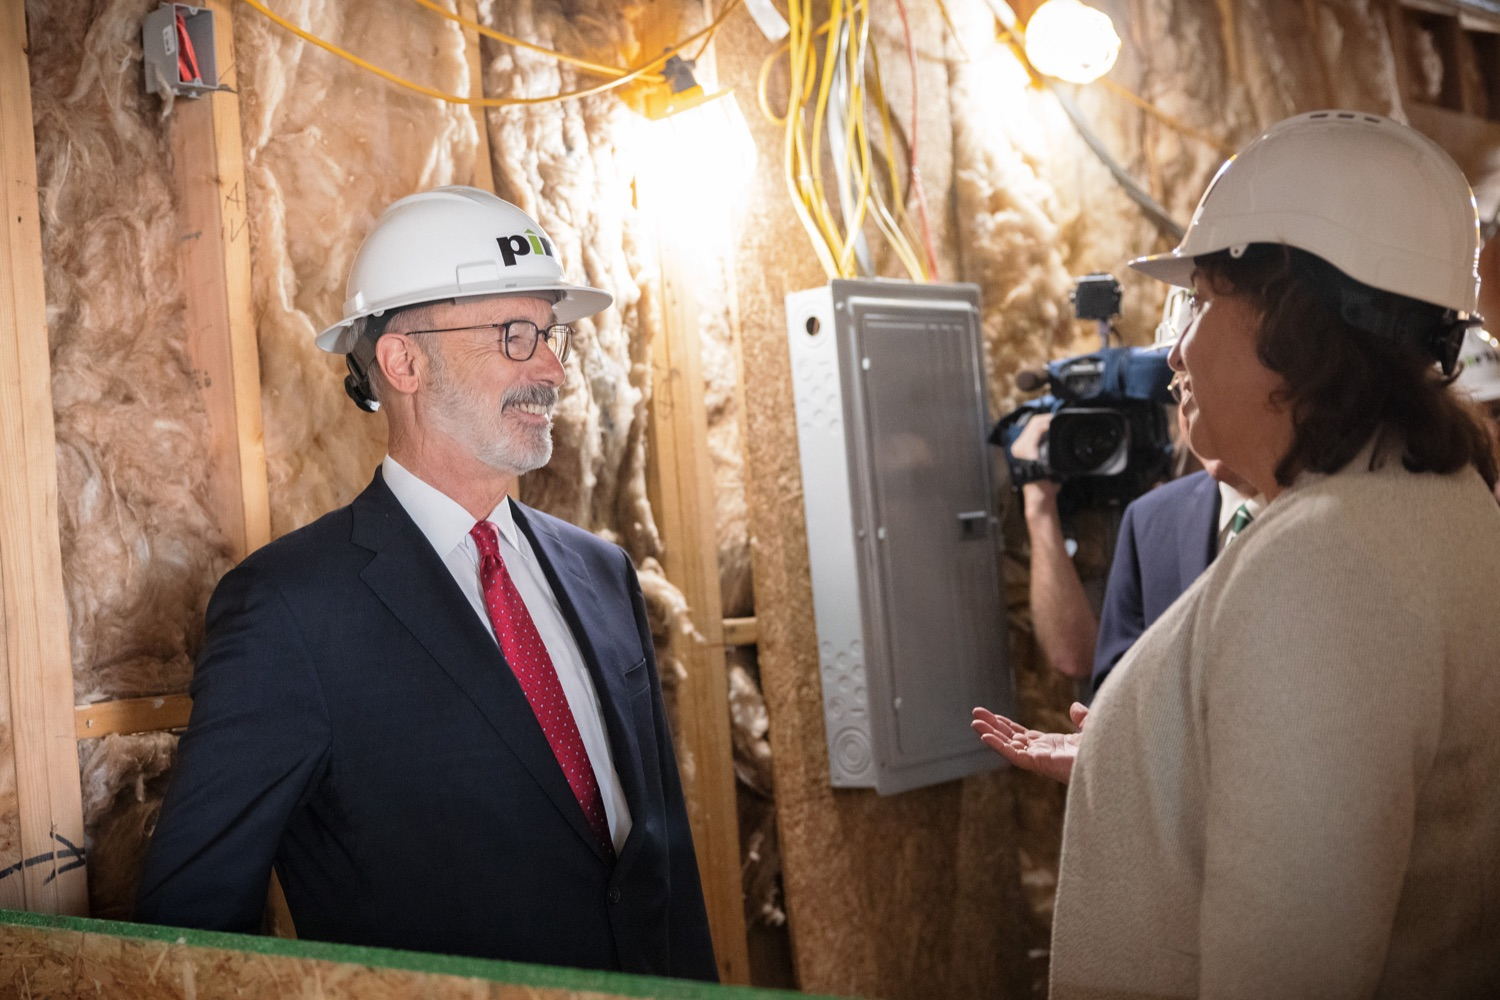 """<a href=""""https://filesource.wostreaming.net/commonwealthofpa/photo/20125_gov_economicDevelopment_dz_009.jpg"""" target=""""_blank"""">⇣Download Photo<br></a>Governor Tom Wolf touring the site of the Mill at Easton. Governor Tom Wolf today visited the City of Easton to highlight millions of dollars in state investments in several economic development projects that are revitalizing formerly vacant and blighted properties.  Easton, PA   October 8, 2021."""